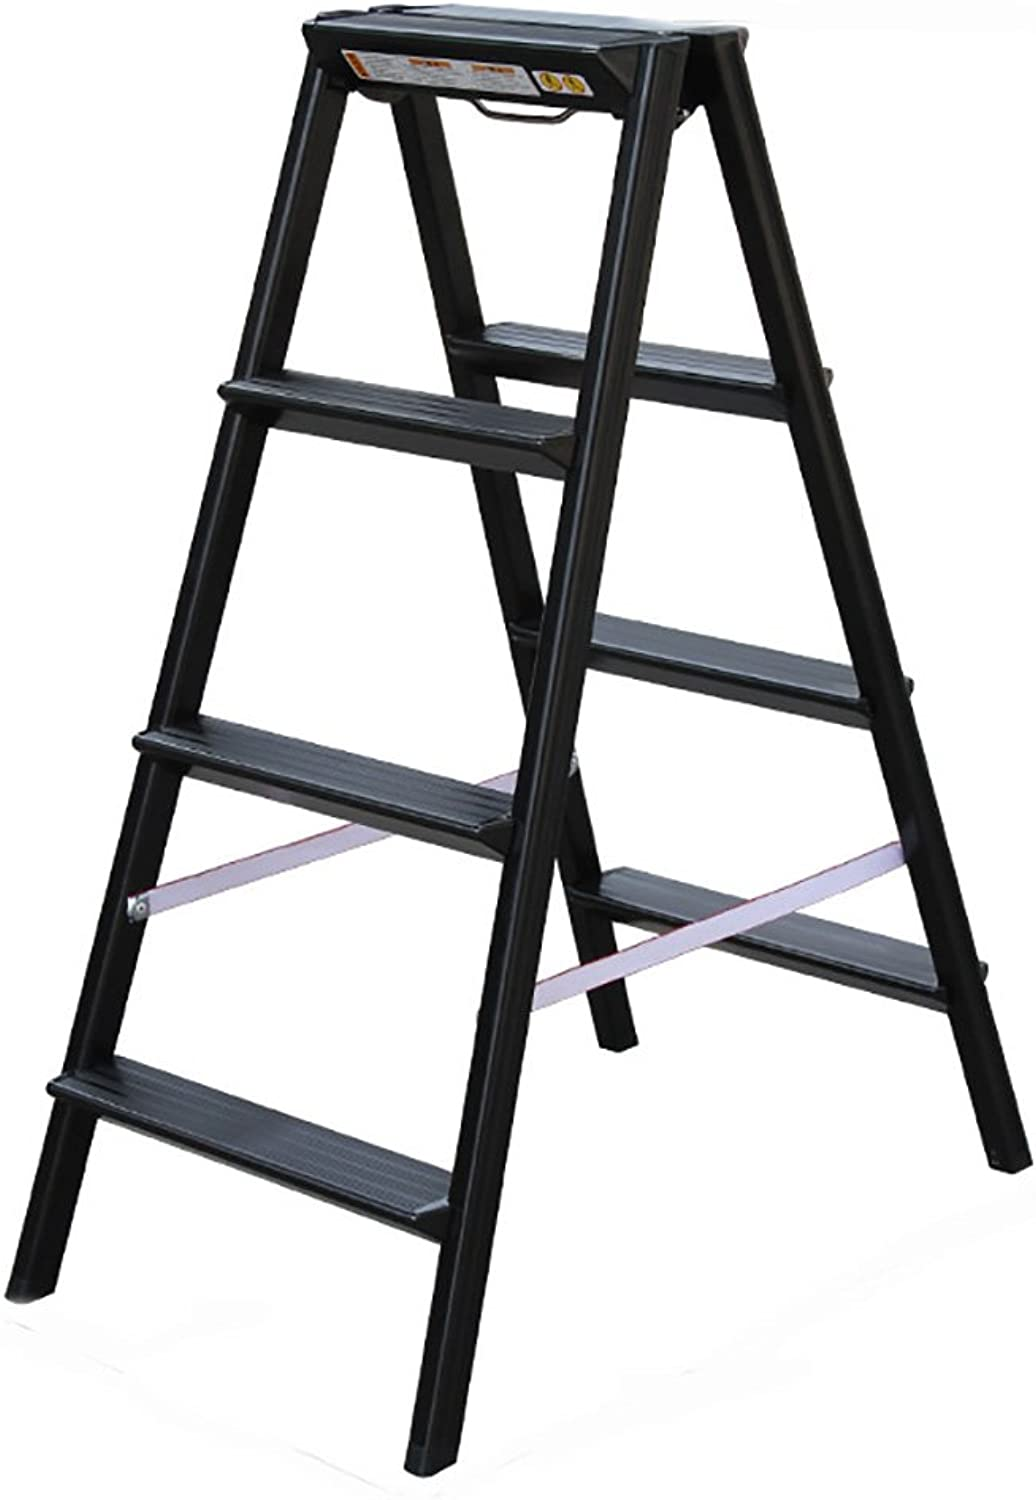 LIZITD Step stool, European style simple aluminum black, white, brown, ladder household folding ladder ladder thickening climbing ladder 3, 4 steps small ladder stool indoor multi-function staircase